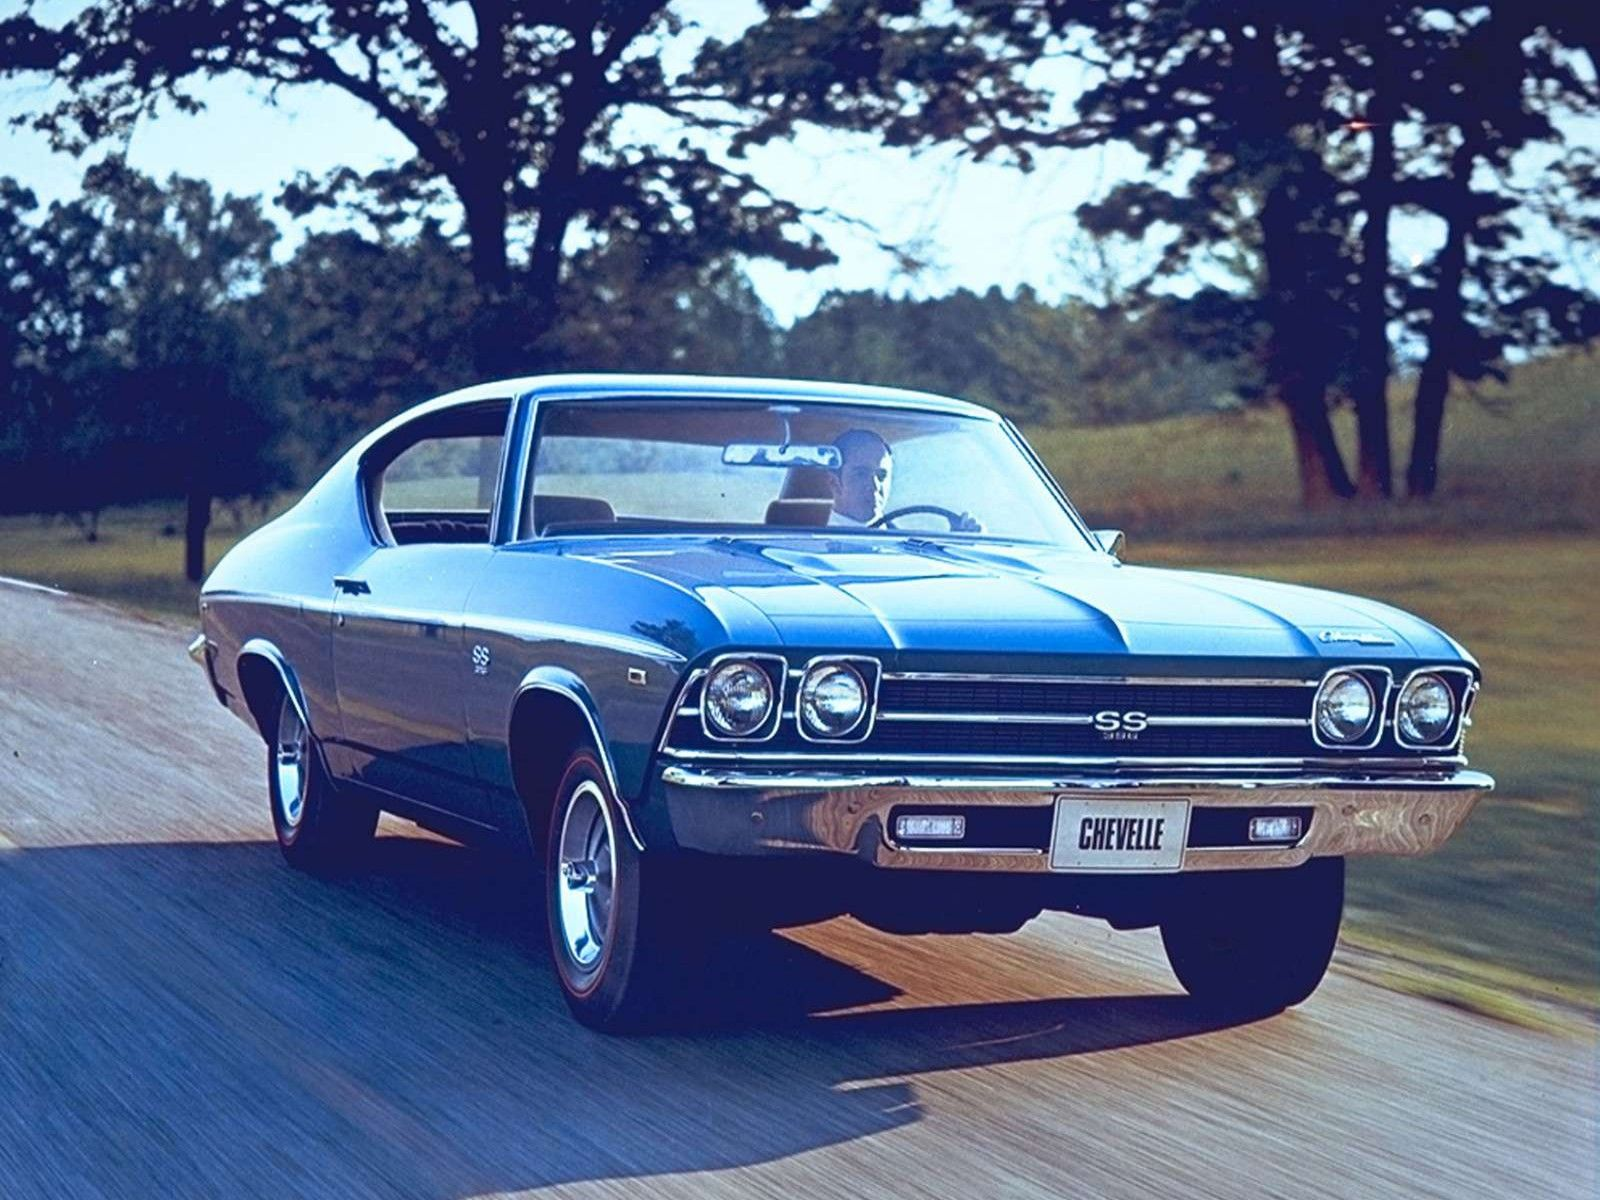 1969 Chevrolet Chevelle Wallpaper